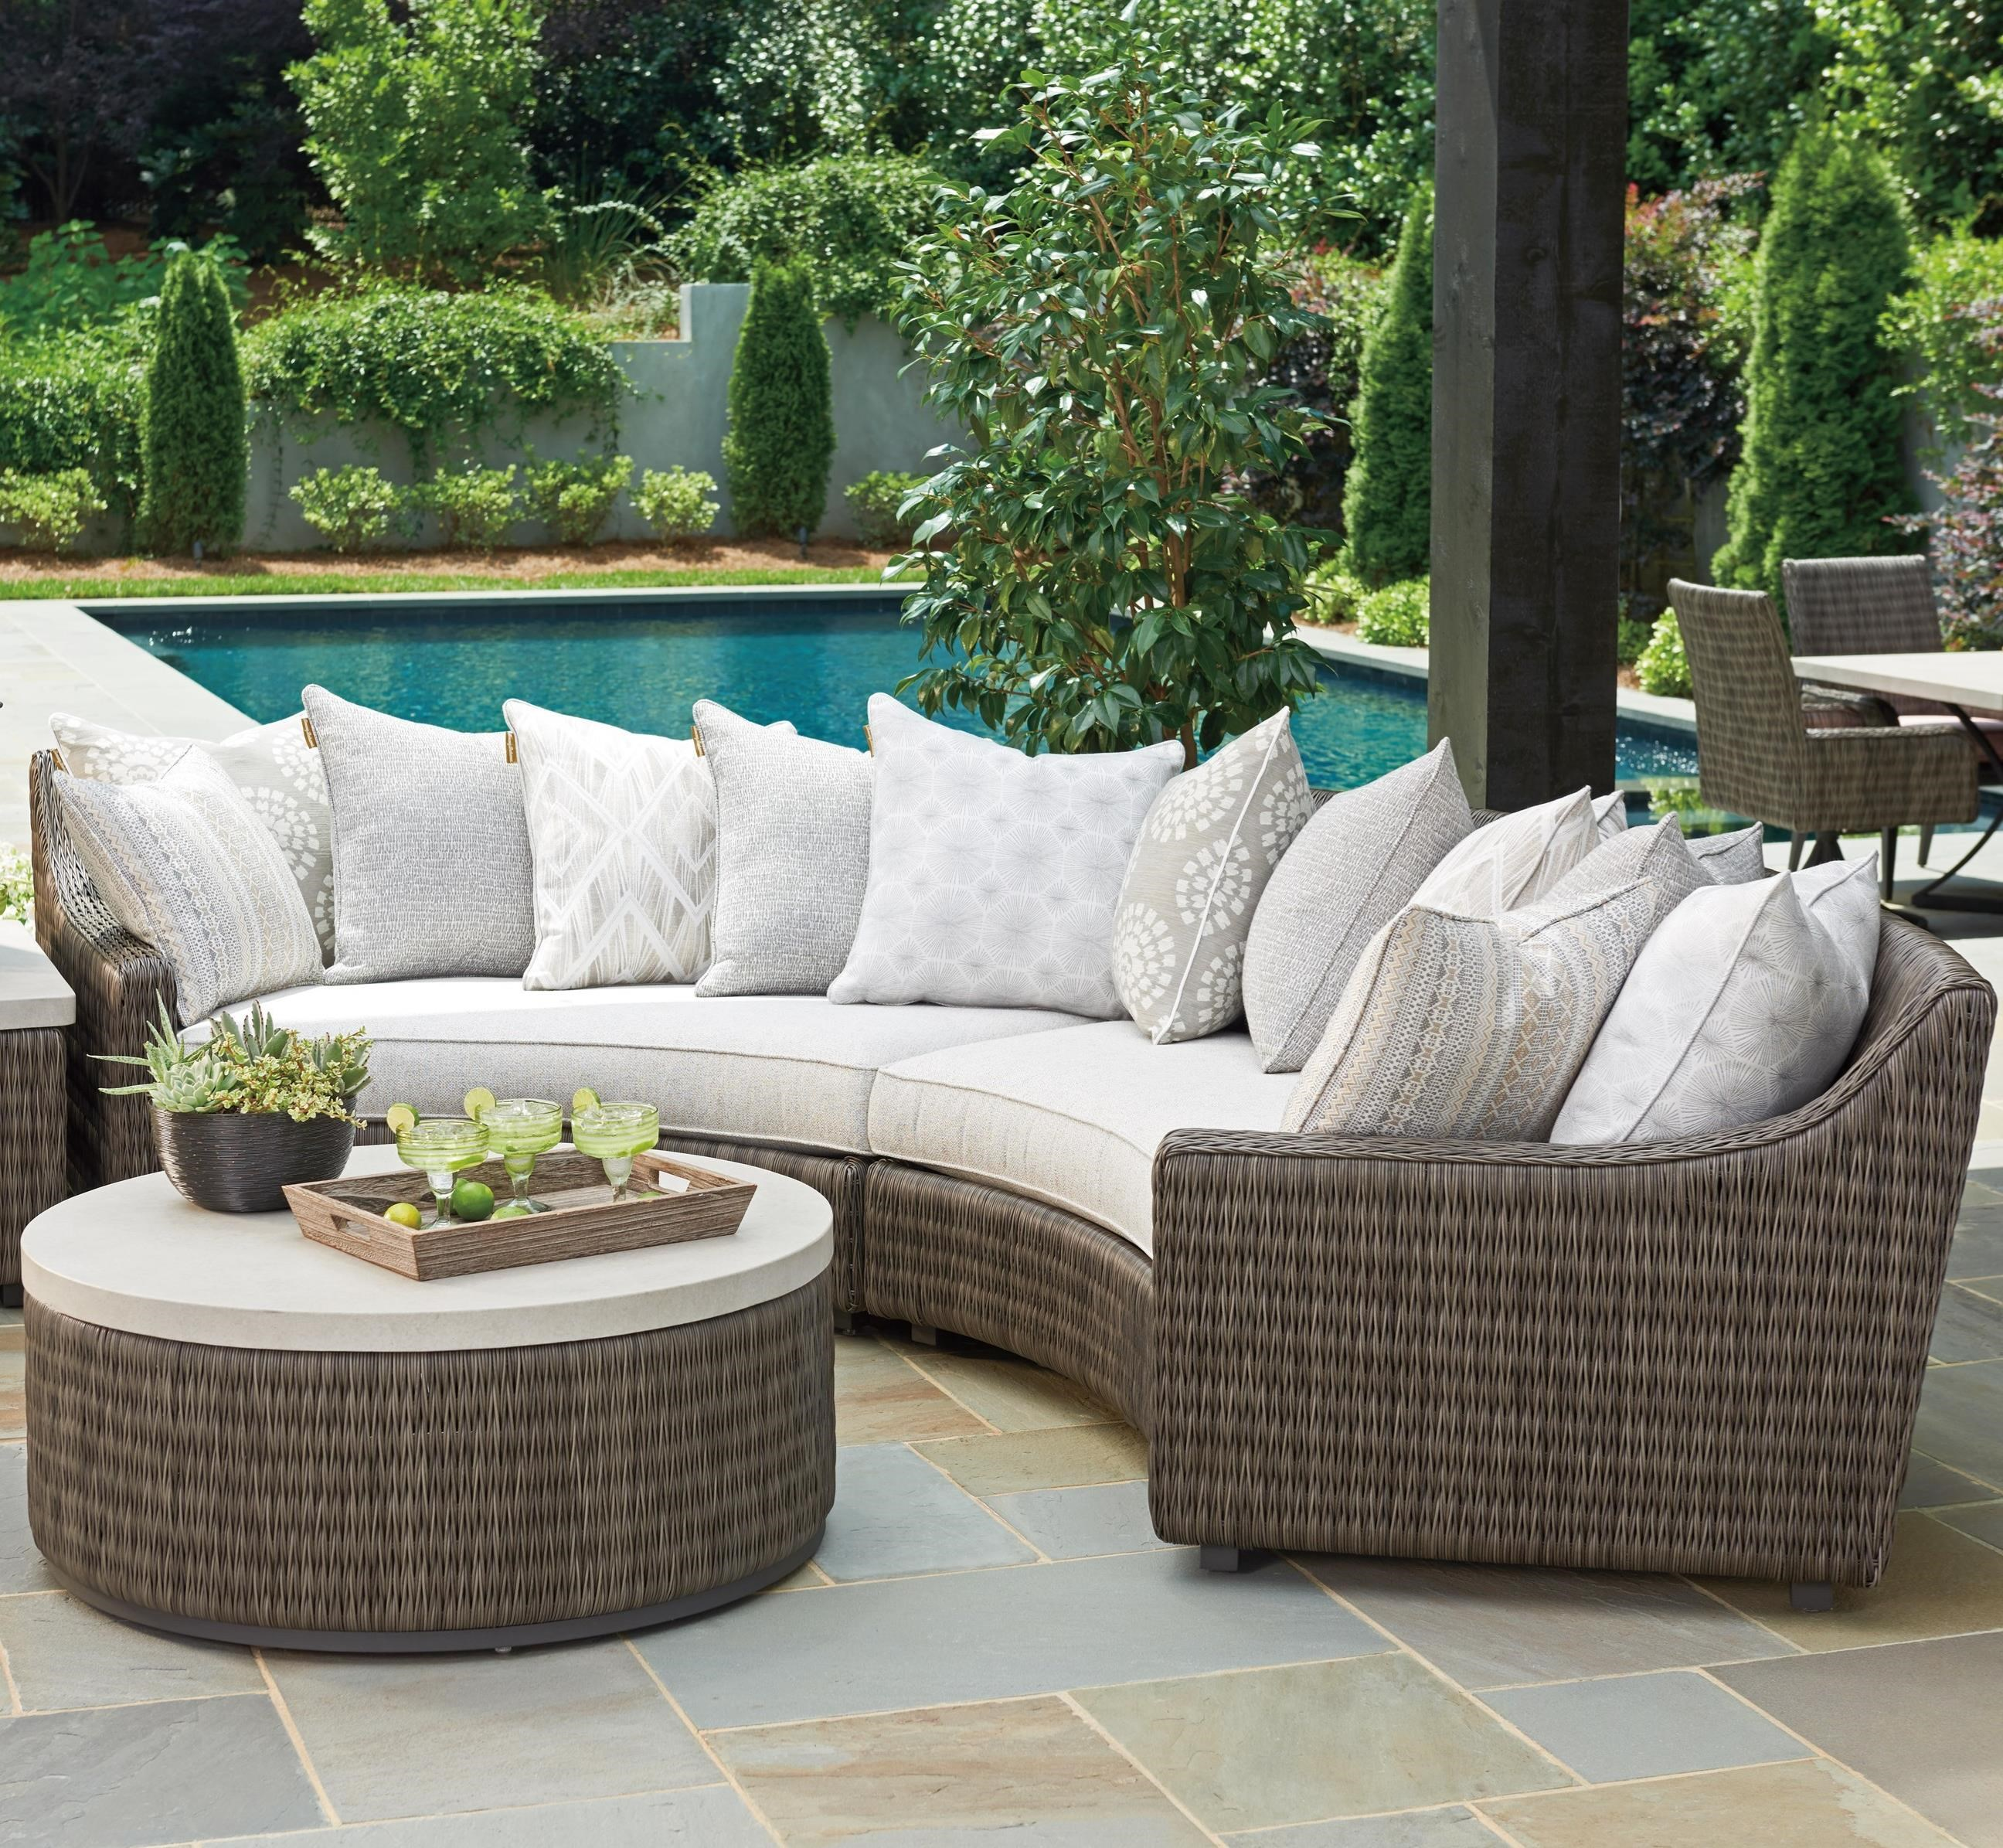 4 seat outdoor curved sectional sofa